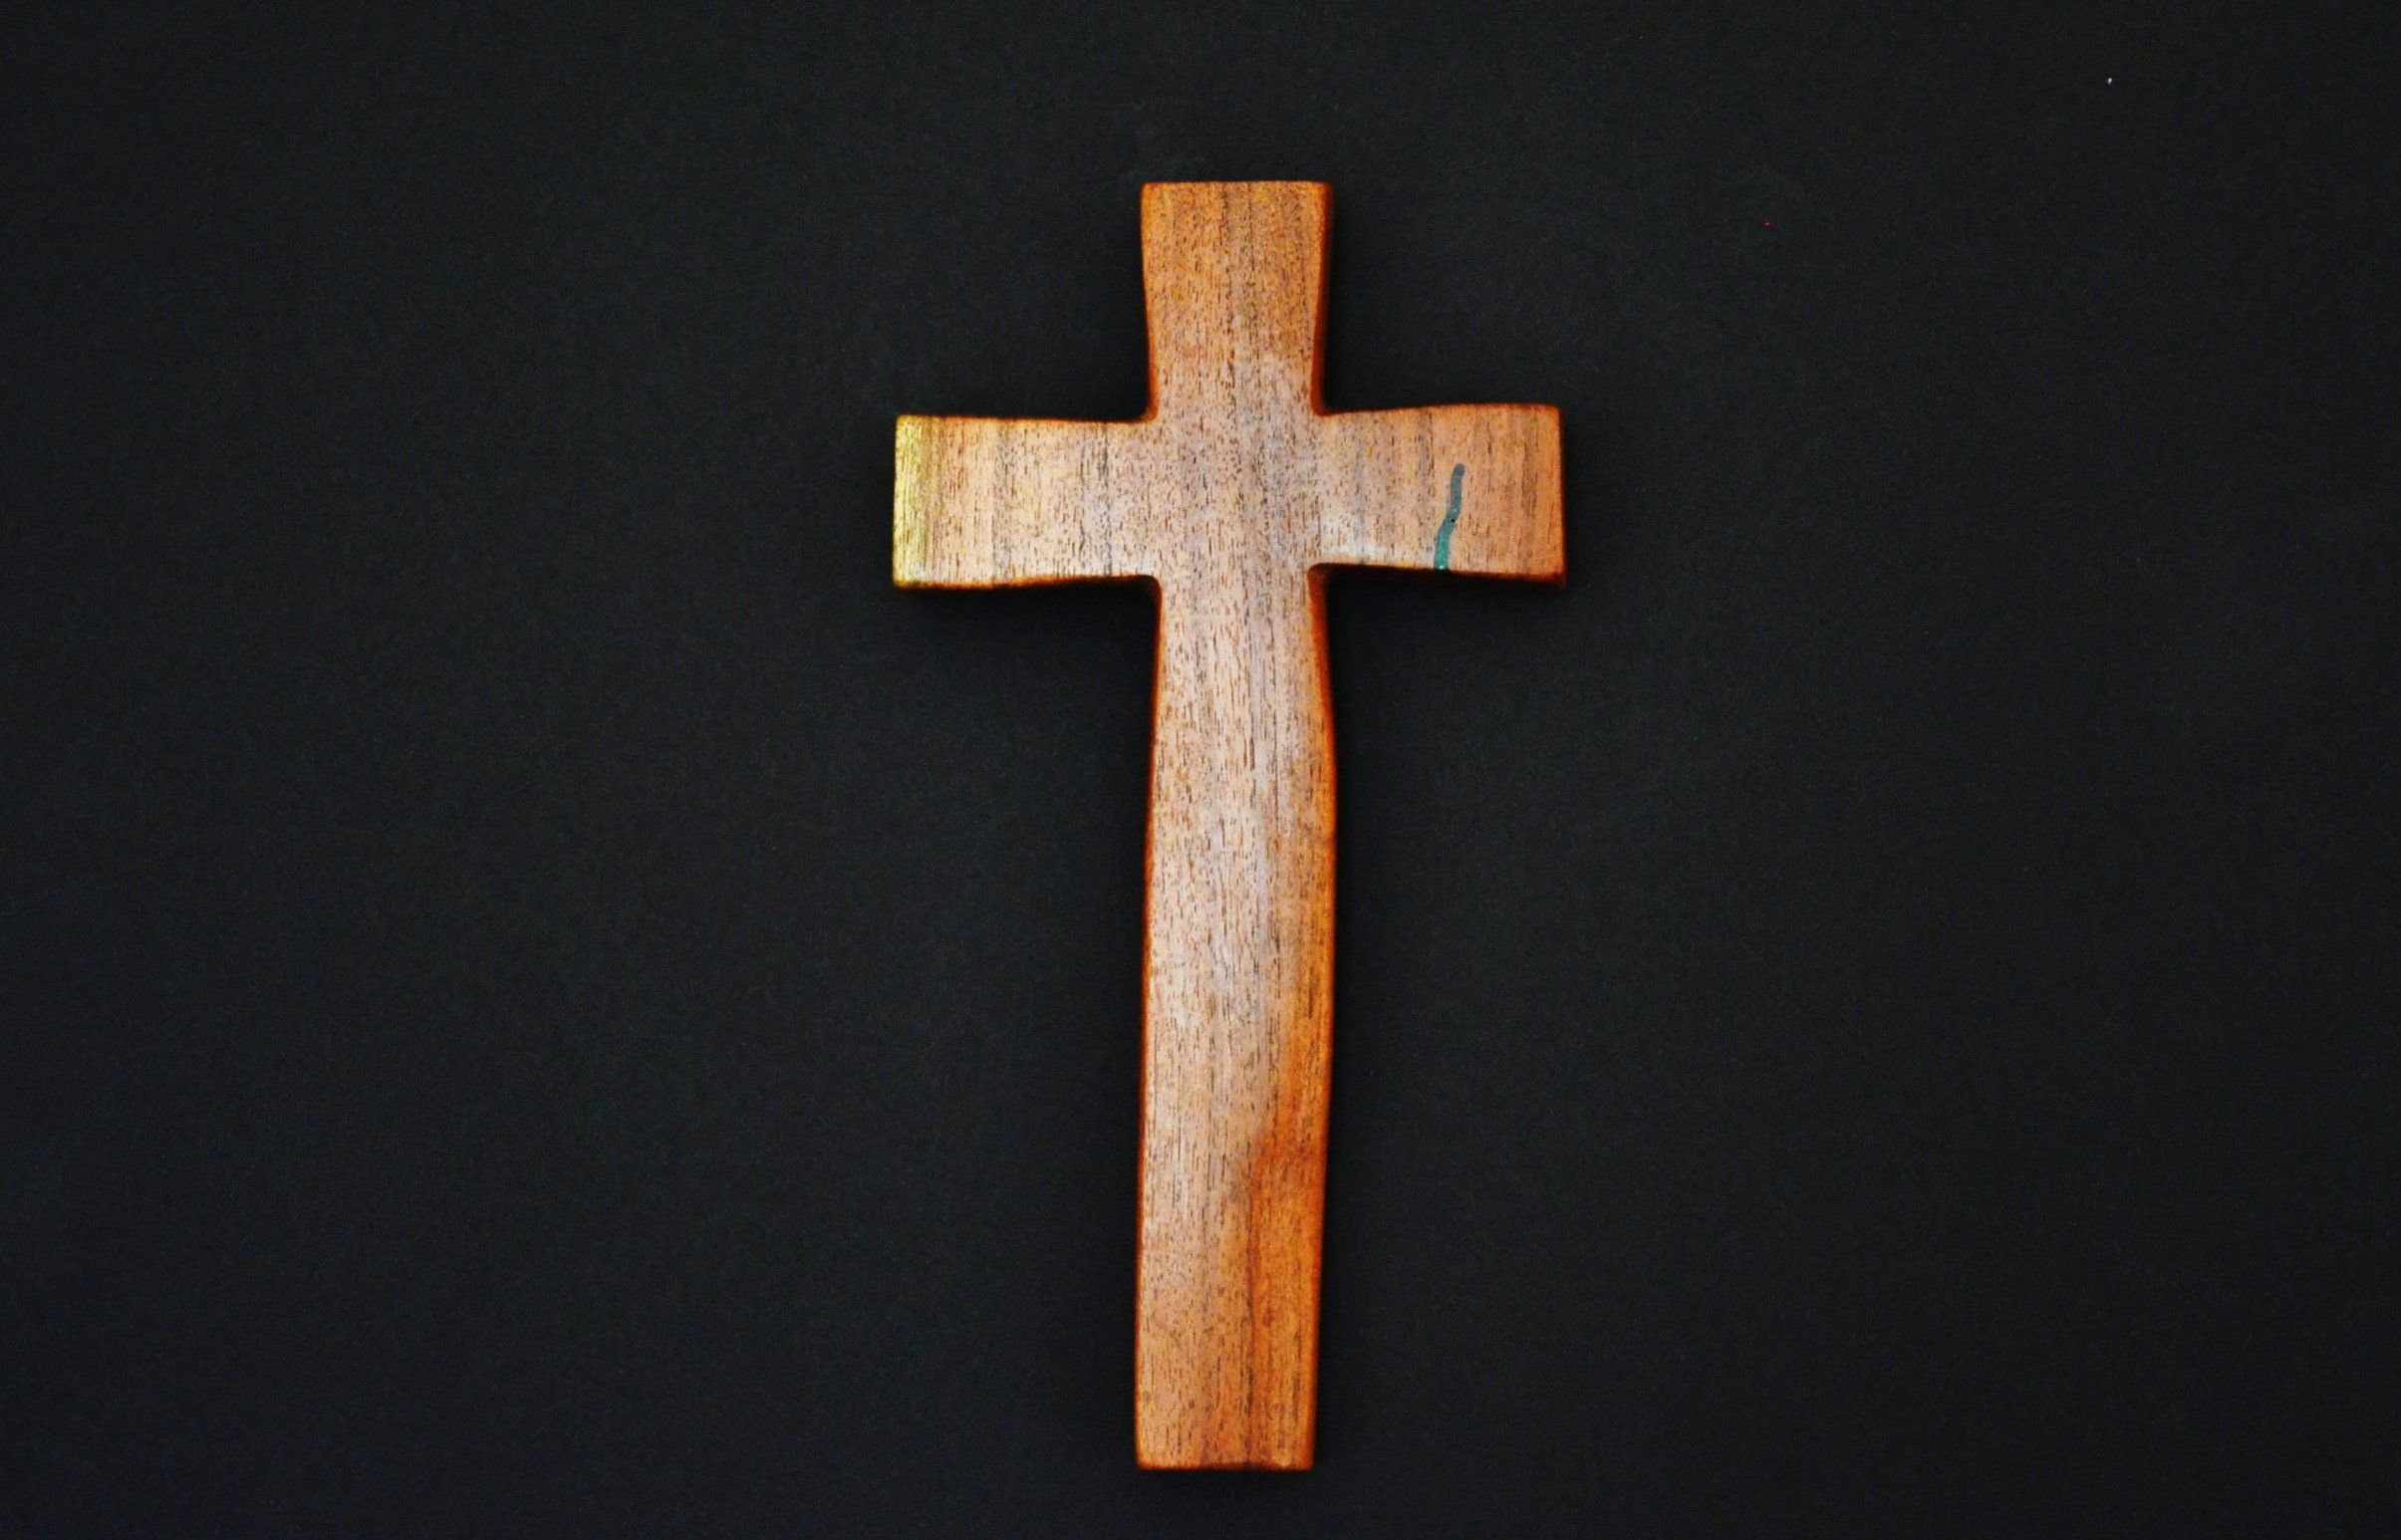 Unique Wall Cross Turquoise Inlay Wood Decor Wooden Gift Free Ground Shipping Cc25tq 1031518